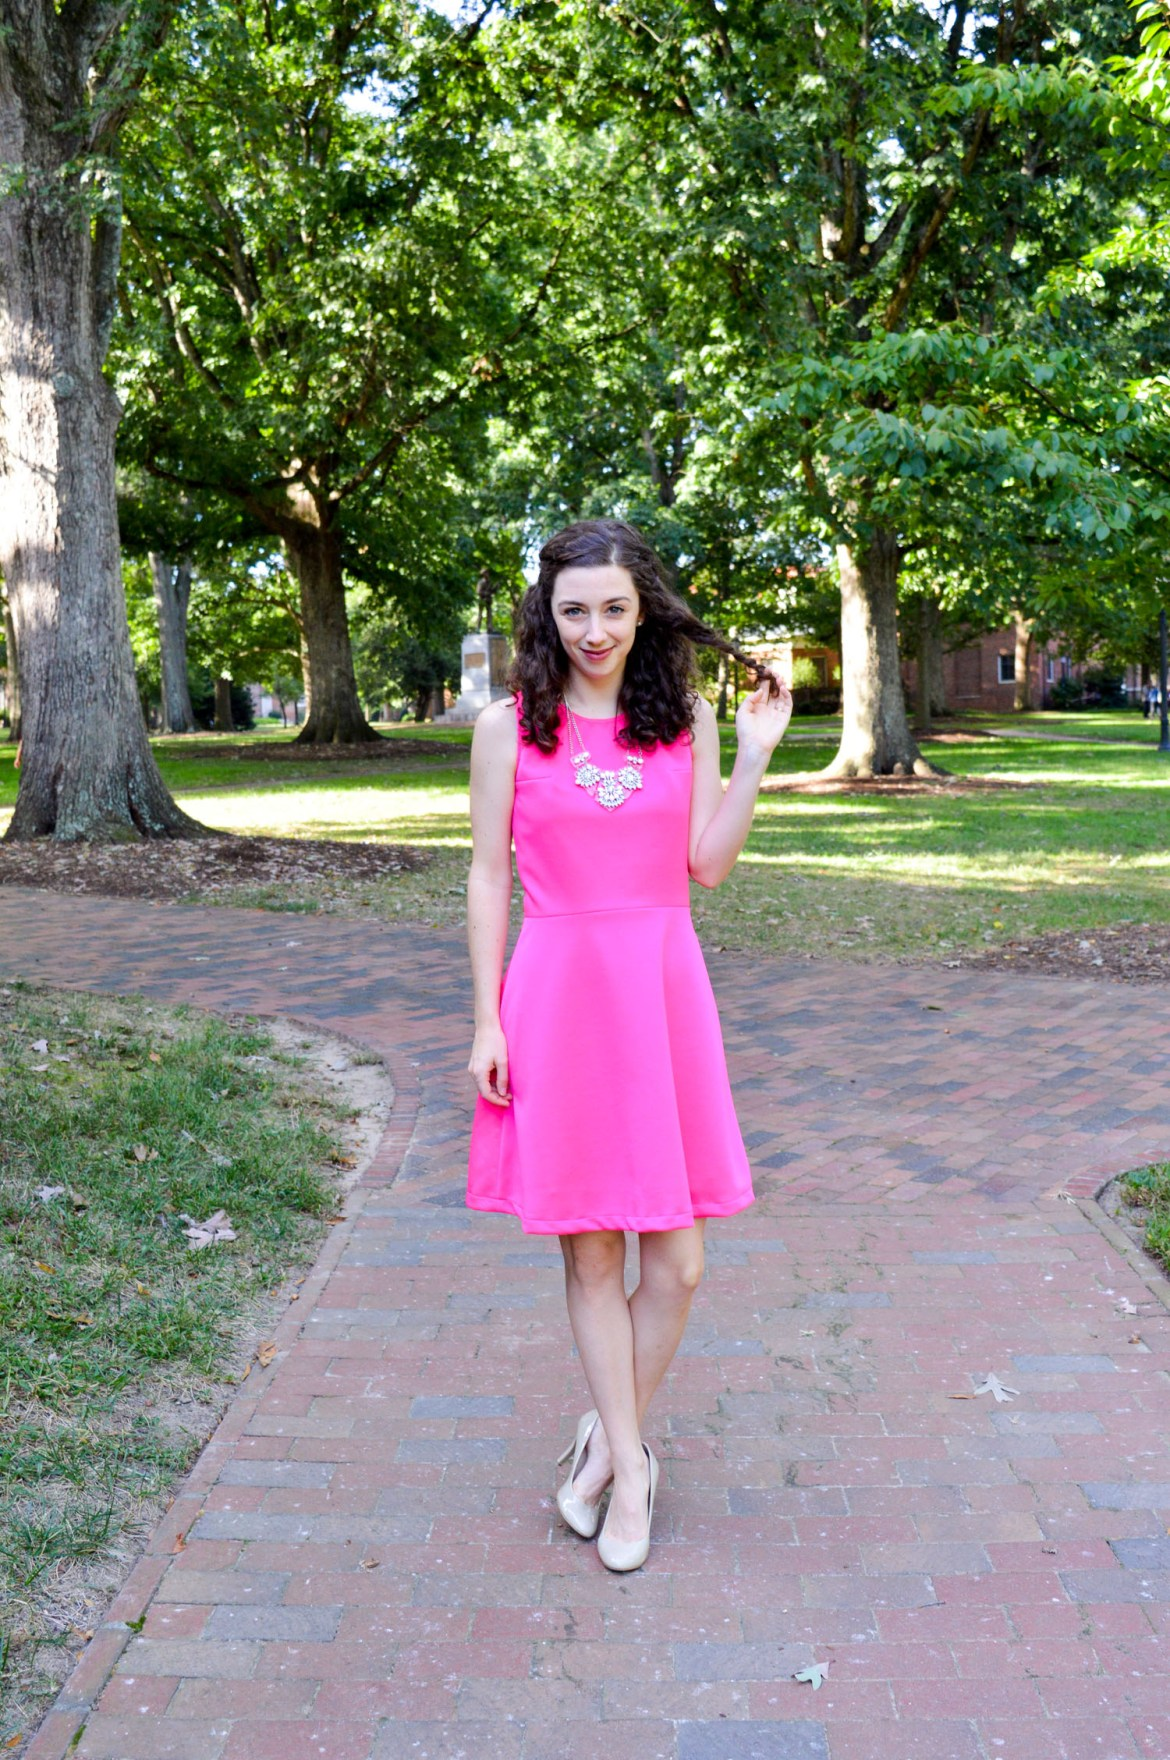 You can never go wrong with a hot pink dress! Style inspiration on Hunting for Pink Flamingos